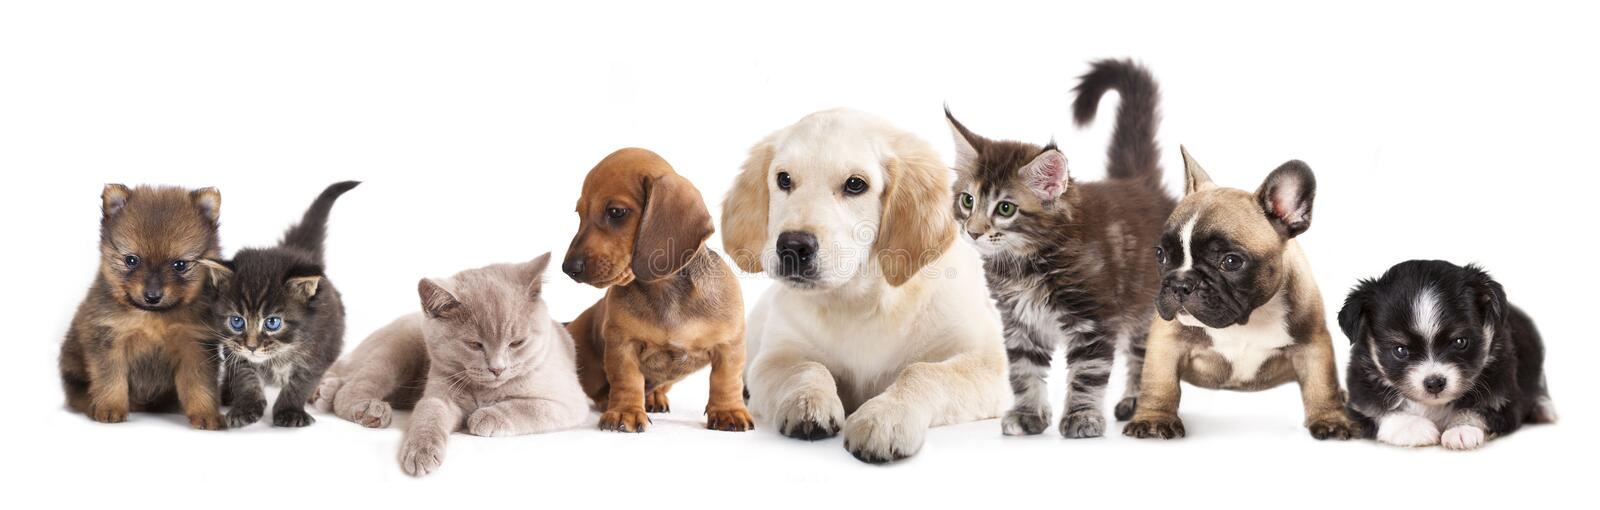 Cat and dog. Puppies and kittens , Group of cats and dogs in front of white background